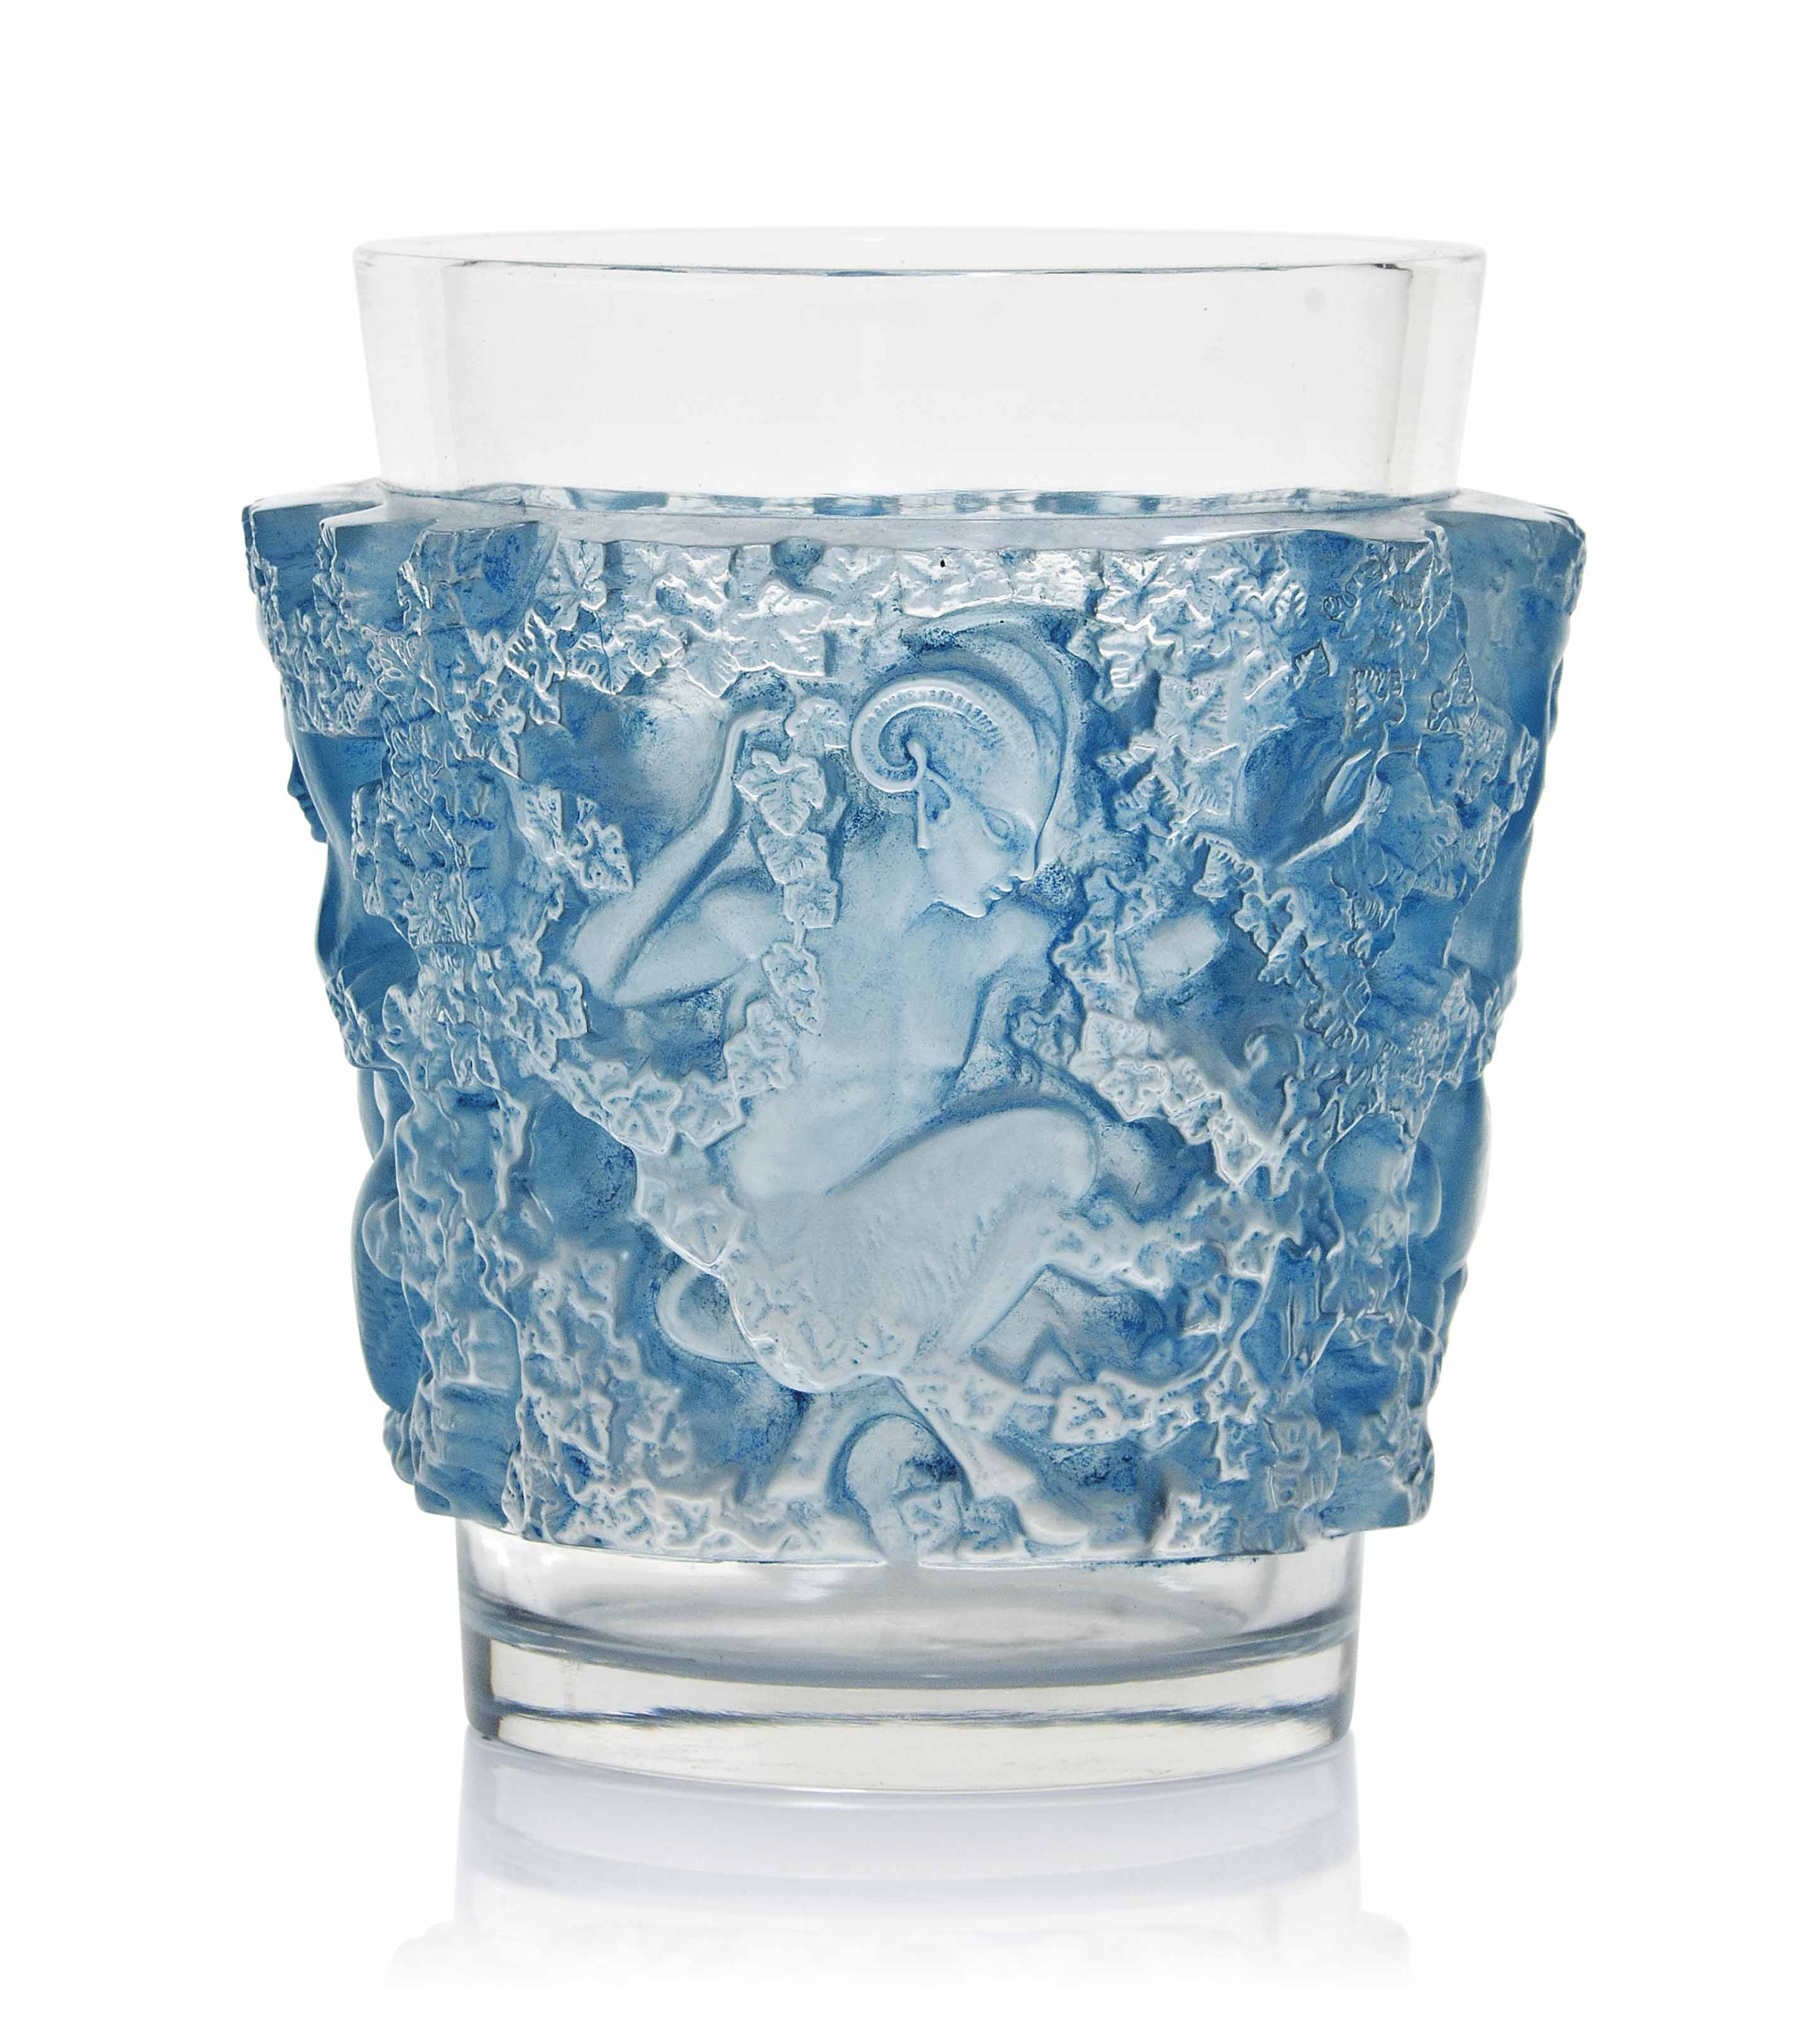 'BACCHUS' A LALIQUE CLEAR AND